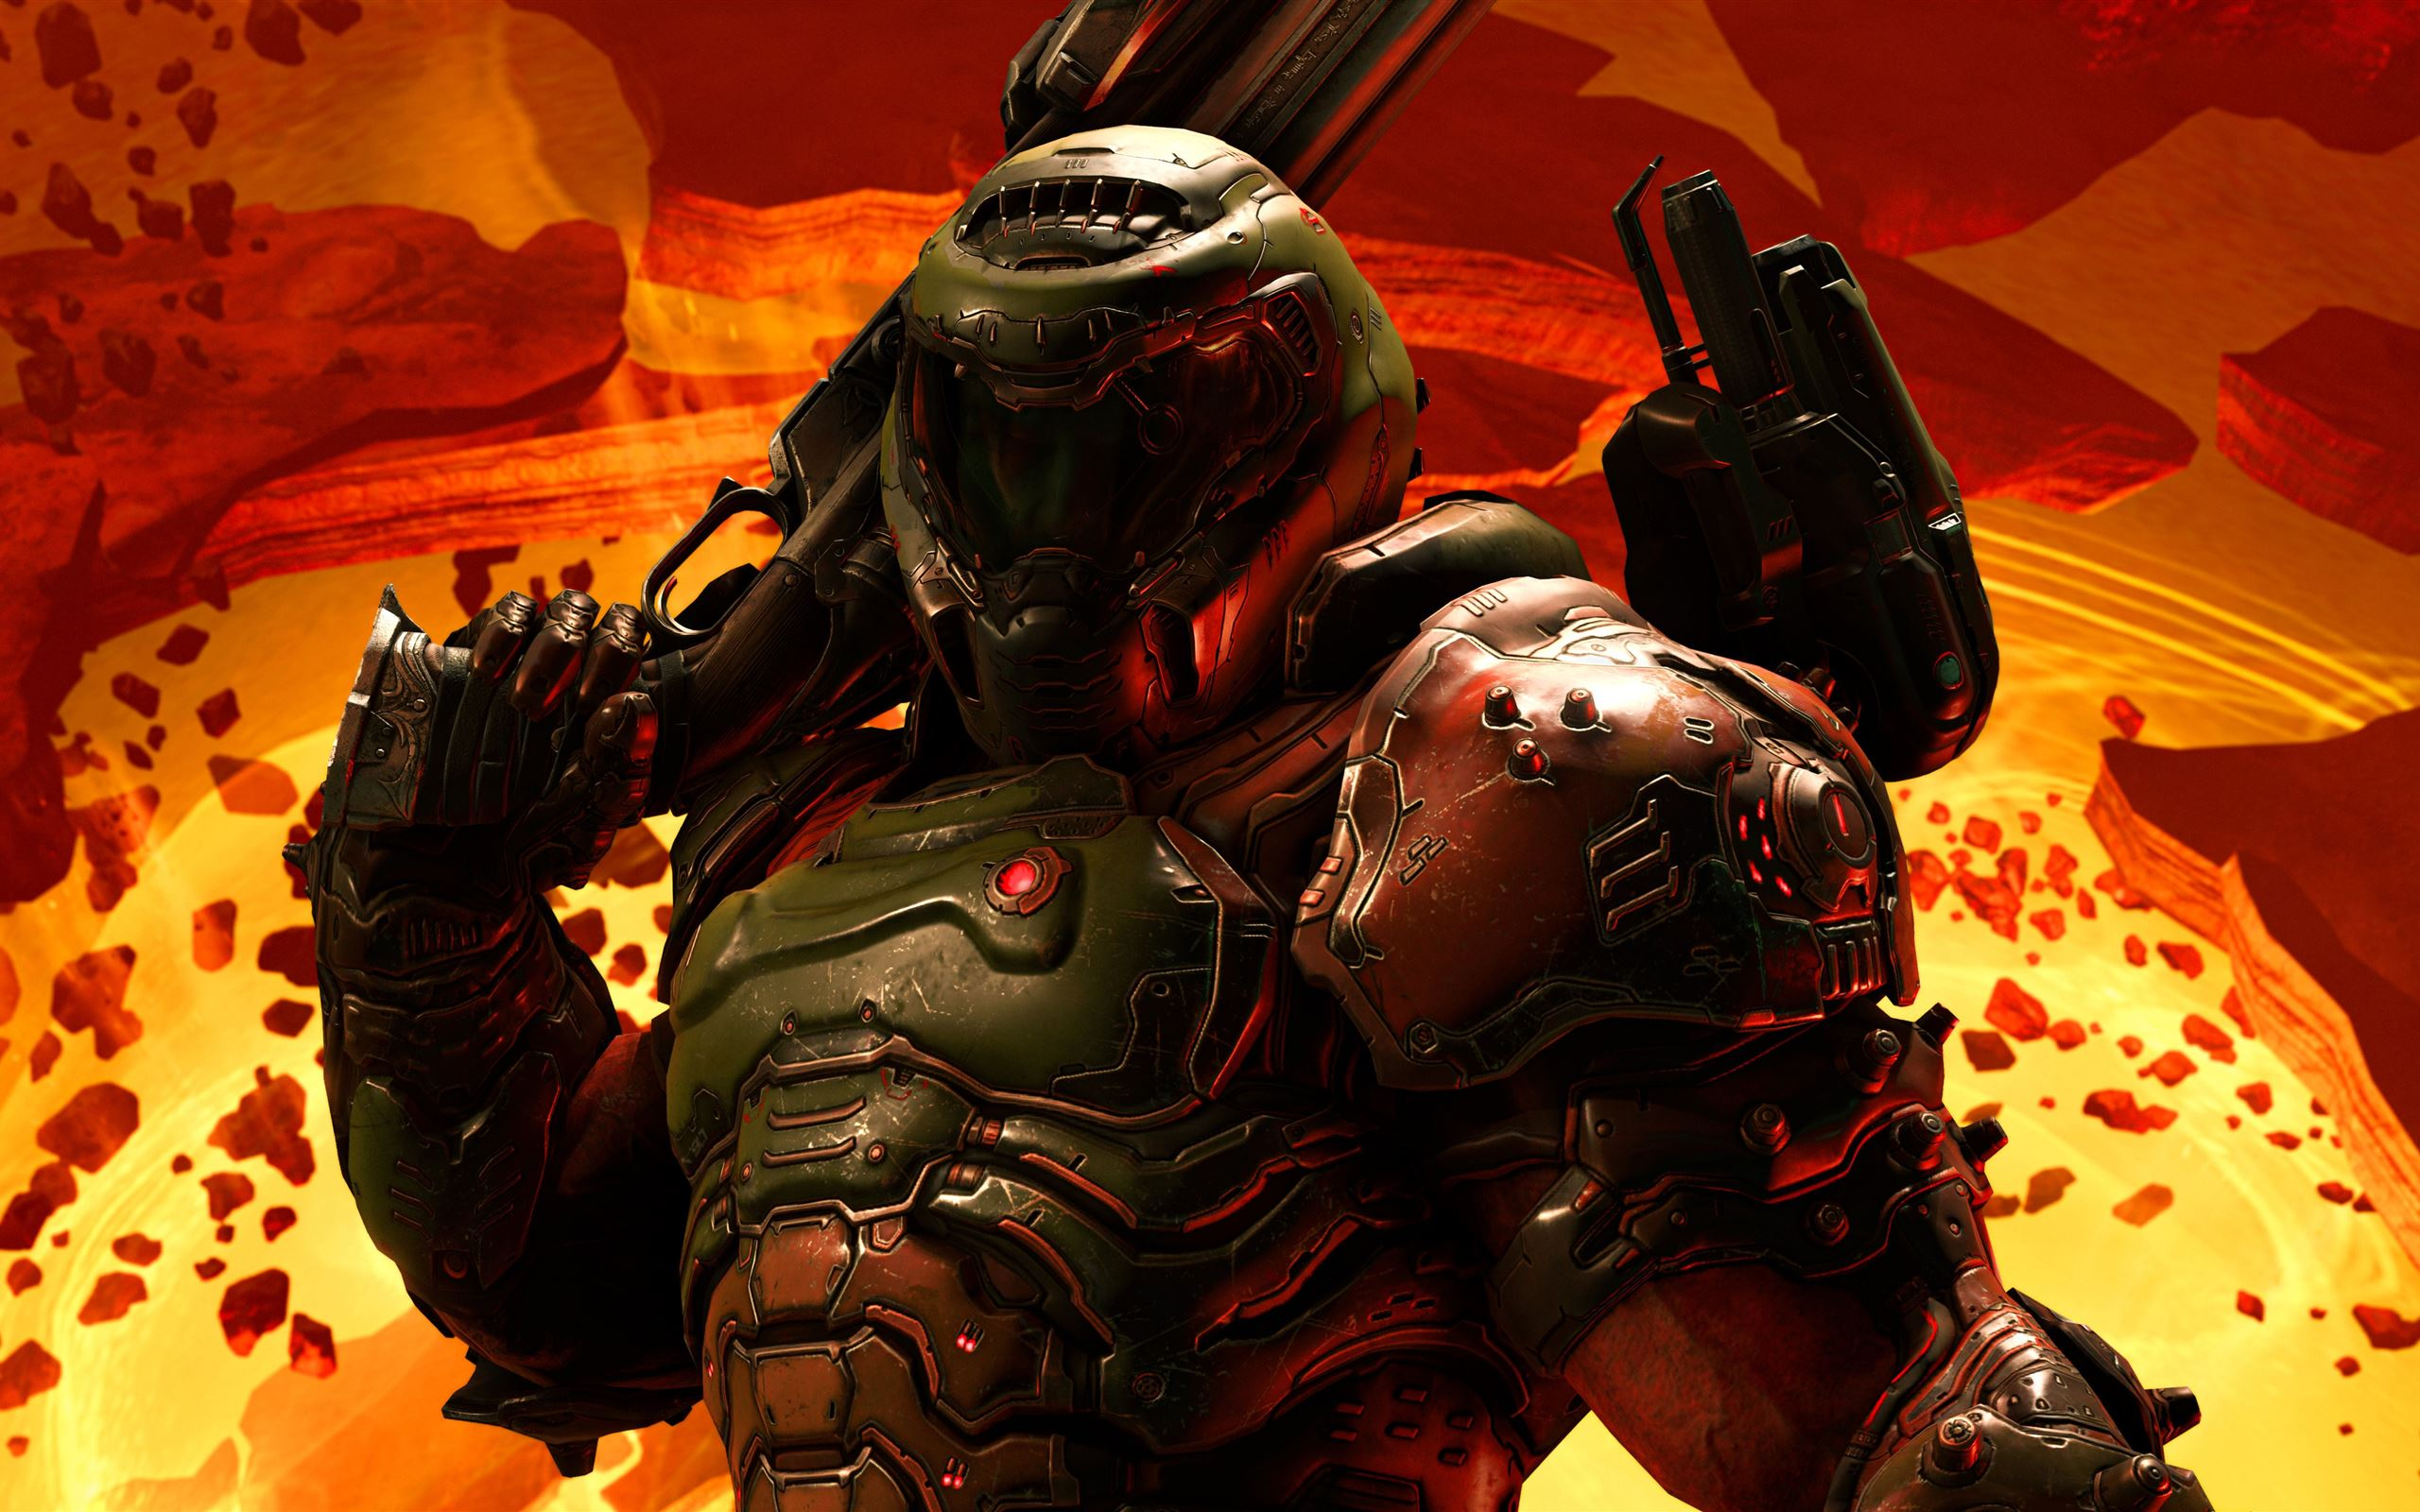 Doom Eternal 5k 2020 Macbook Pro Wallpaper Download Allmacwallpaper